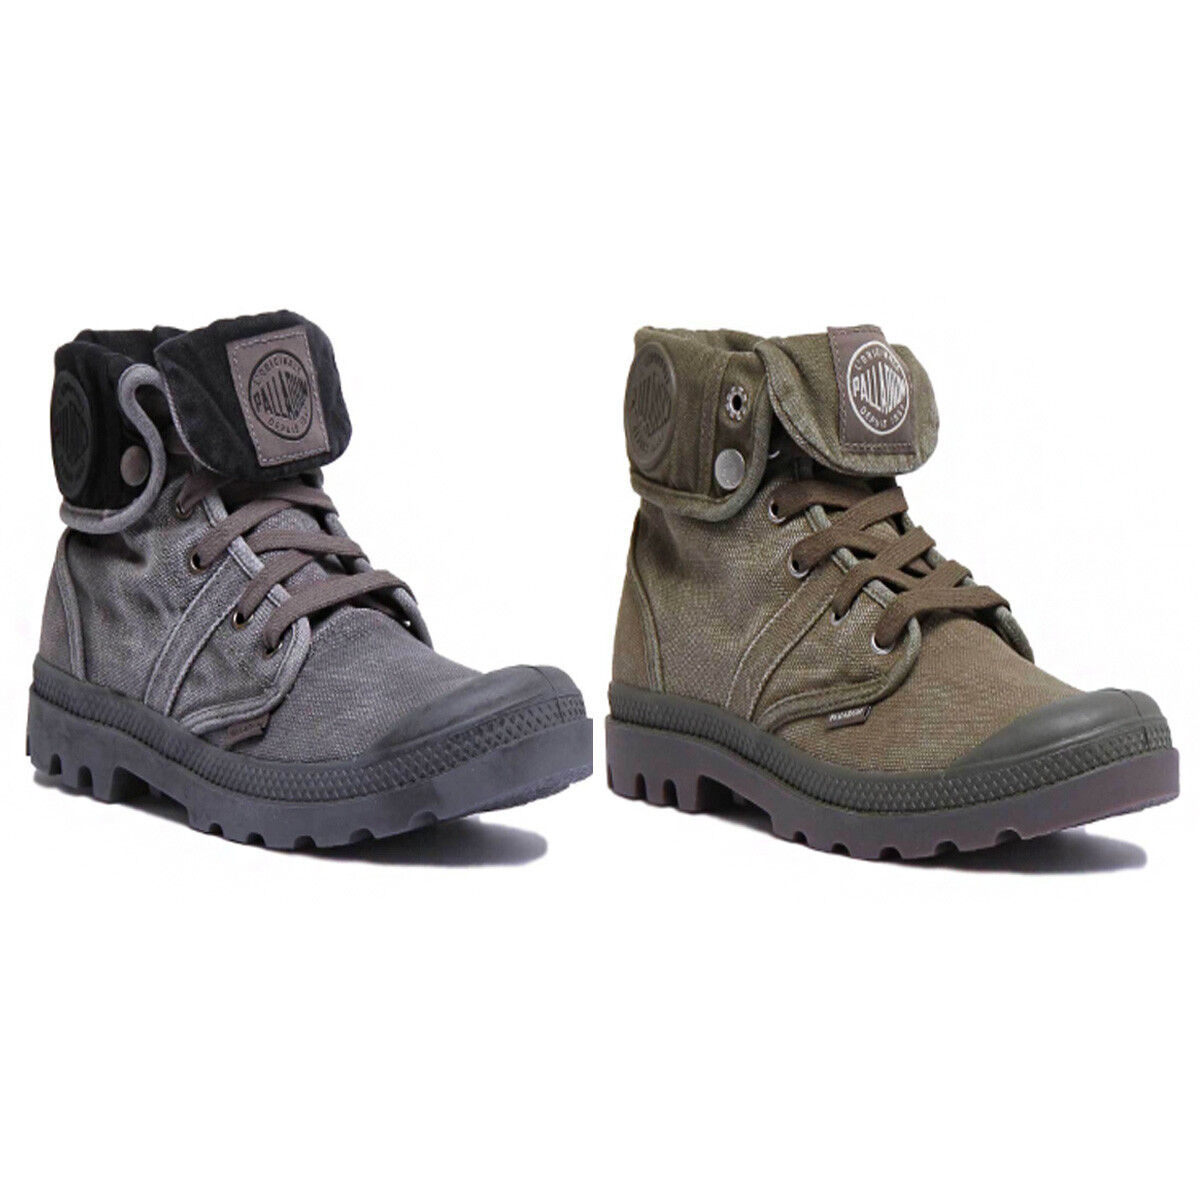 Palladium Us Canvas Baggy  Uomo Olive Canvas Us Stiefel Größe UK 6 - 12 c0f87e